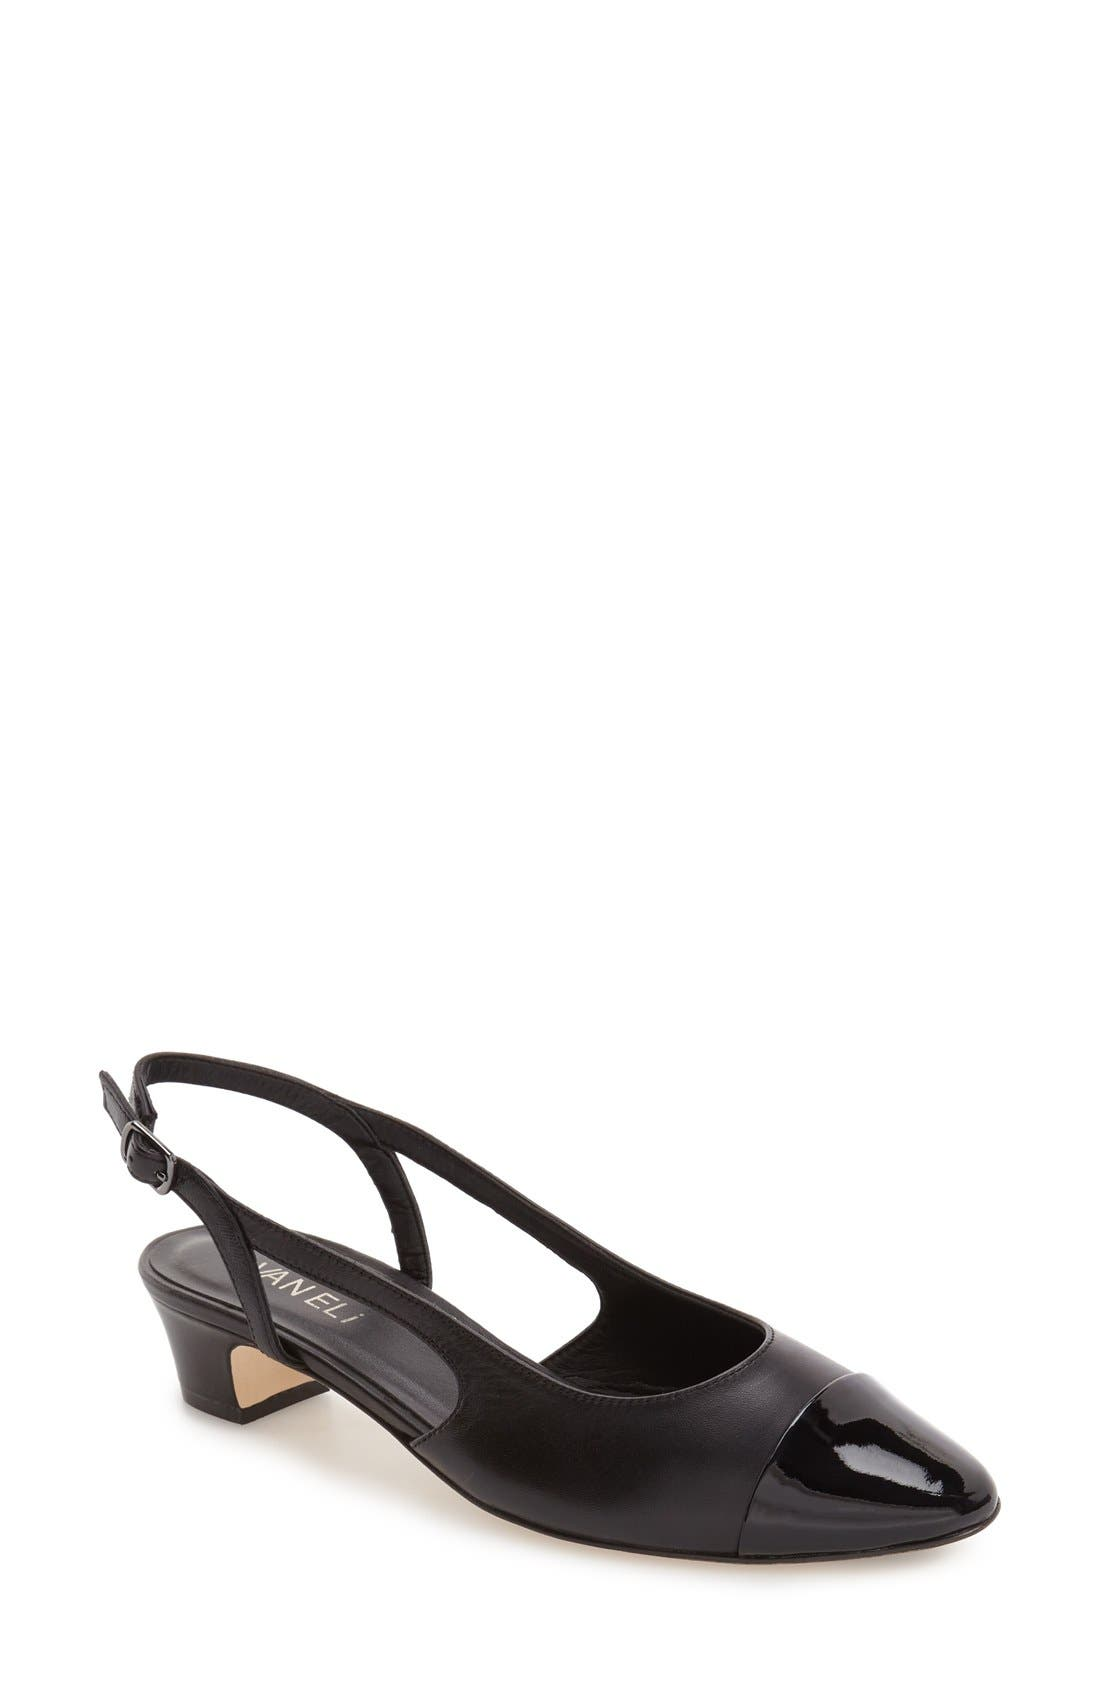 'Aliz' Slingback Pump,                         Main,                         color,